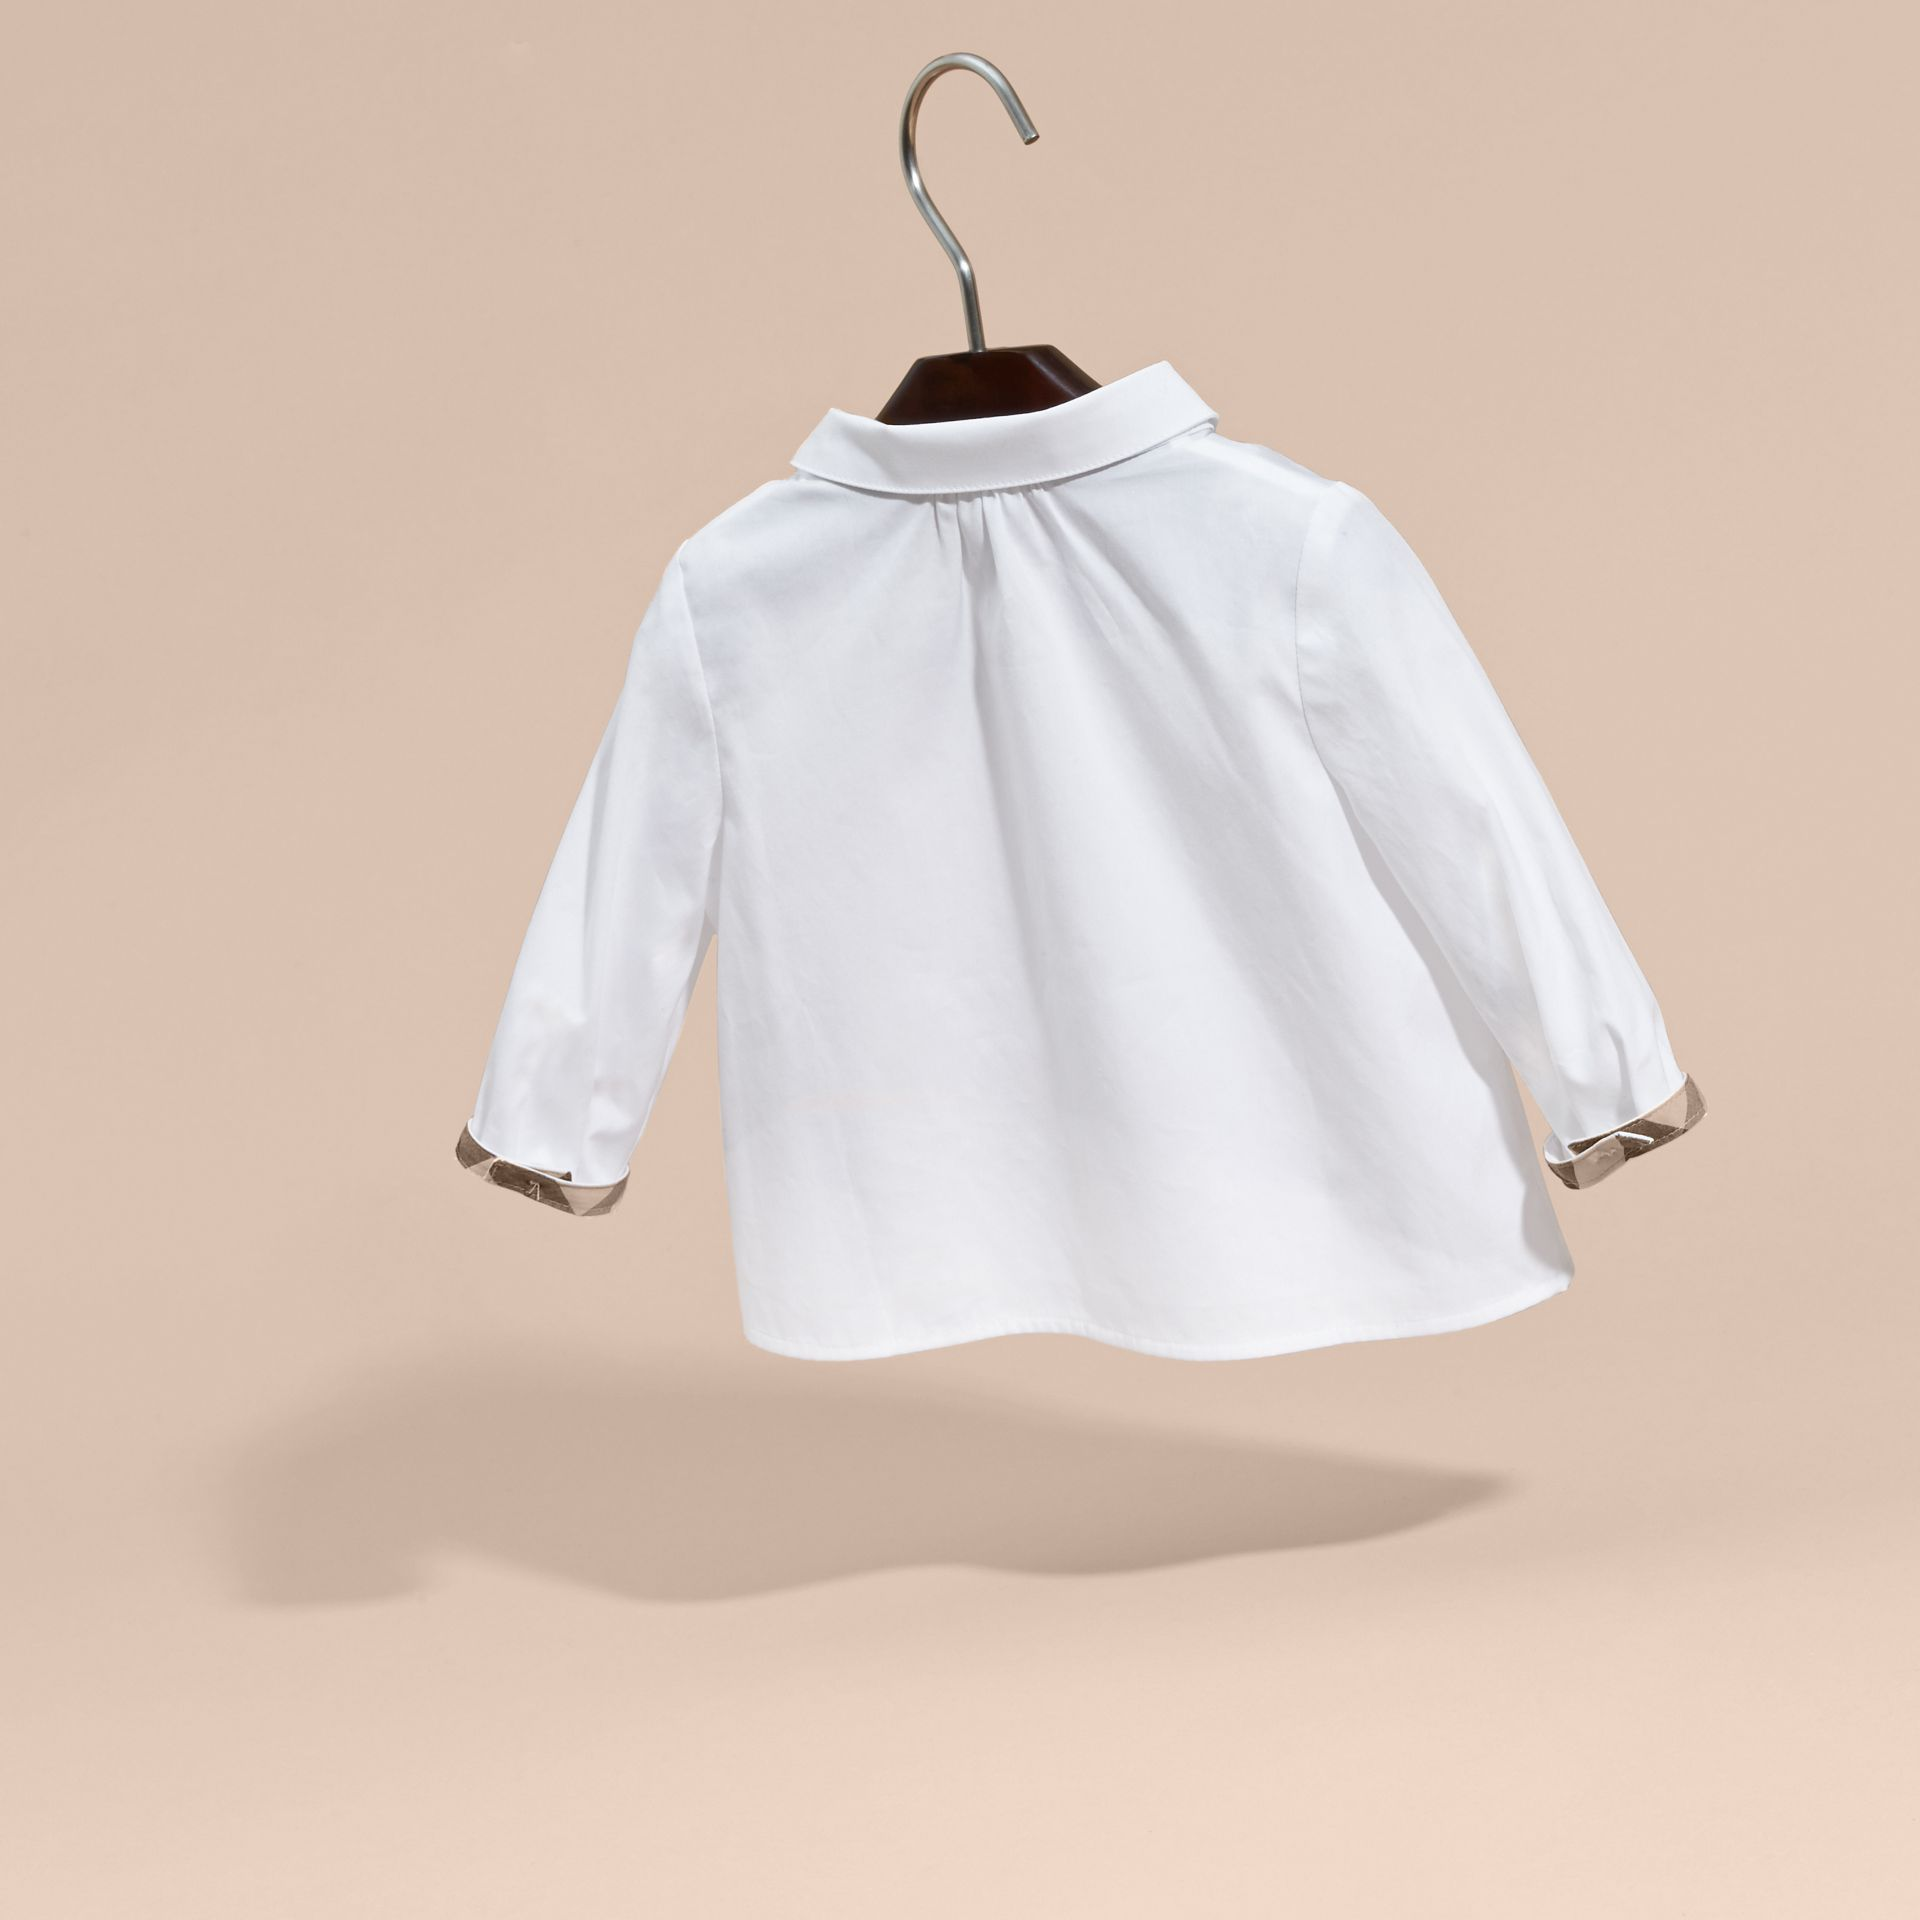 Peter Pan Collar Cotton Shirt in White | Burberry - gallery image 4